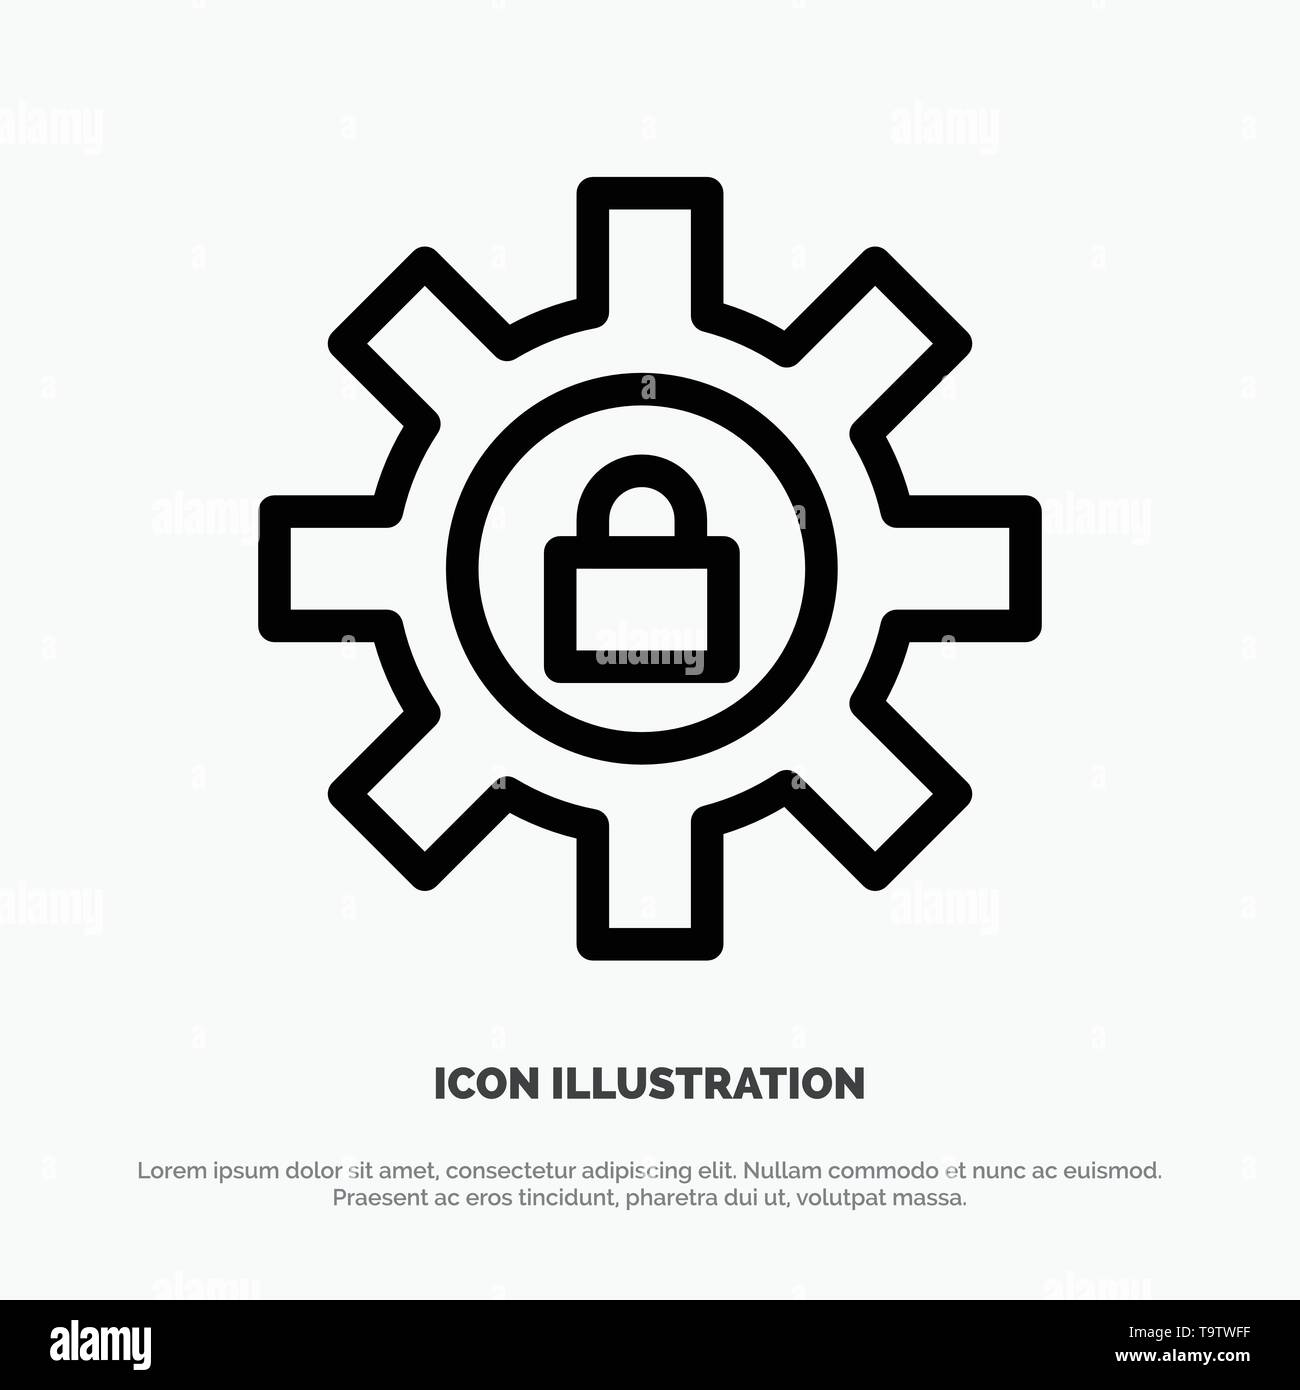 Gear, Setting, Lock, Support Line Icon Vector - Stock Image